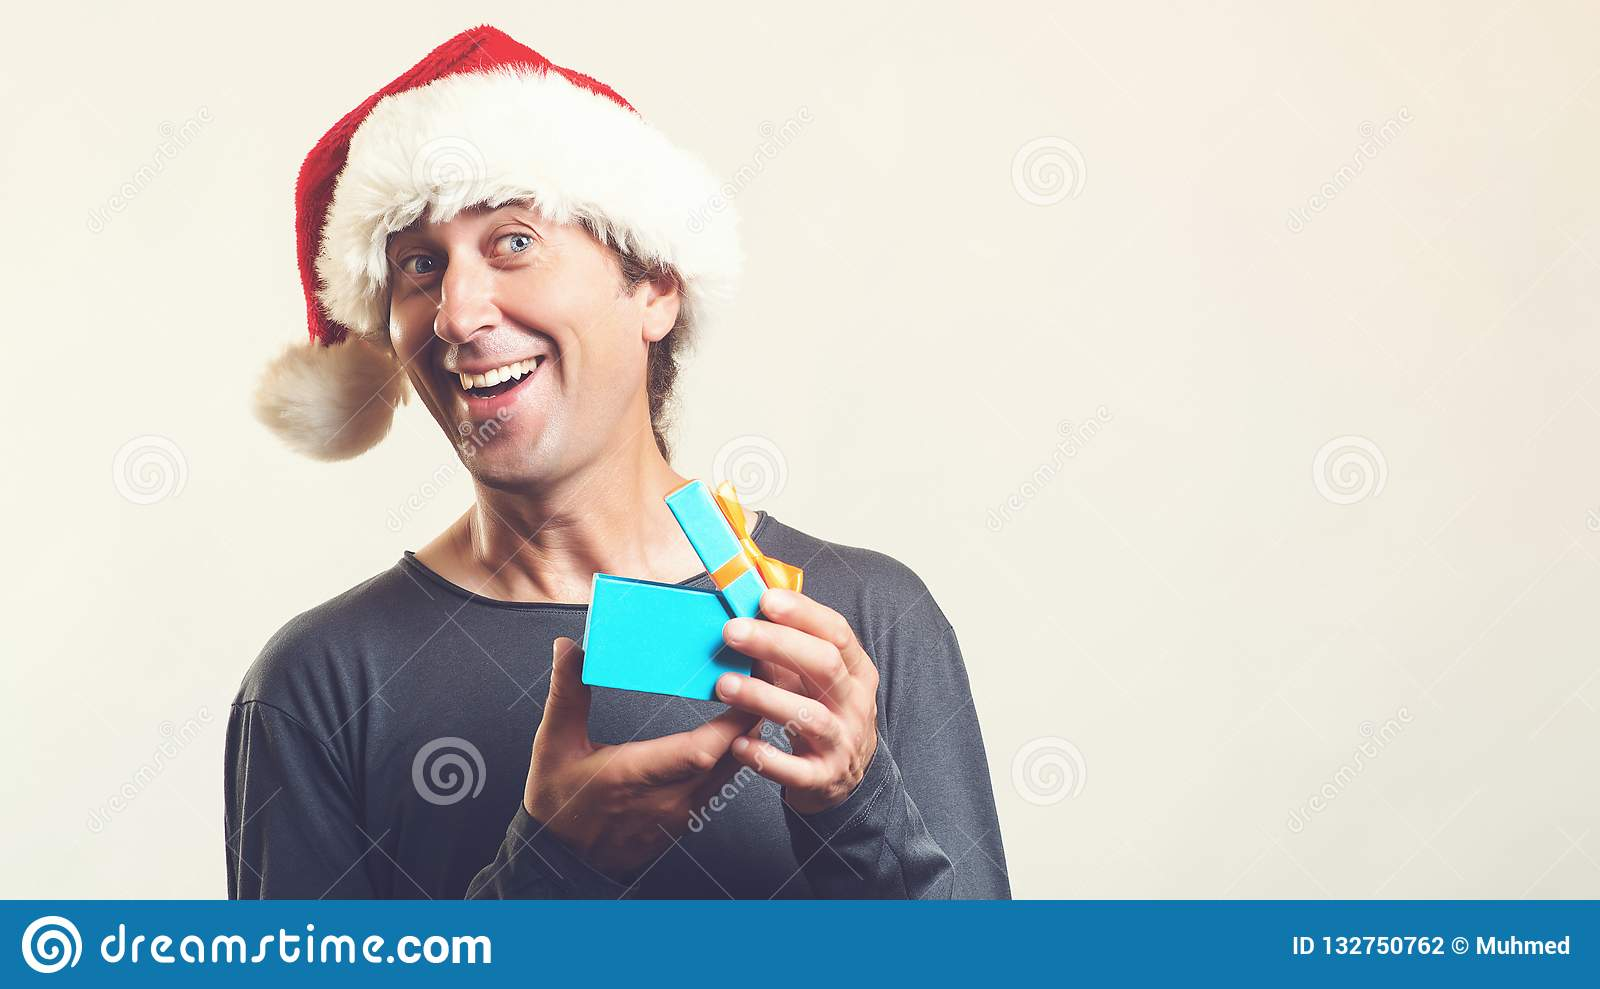 Santa christmas man opening gift box present. Amazing man in Santa hat isolated on white, with copy space. Christmas holidays.